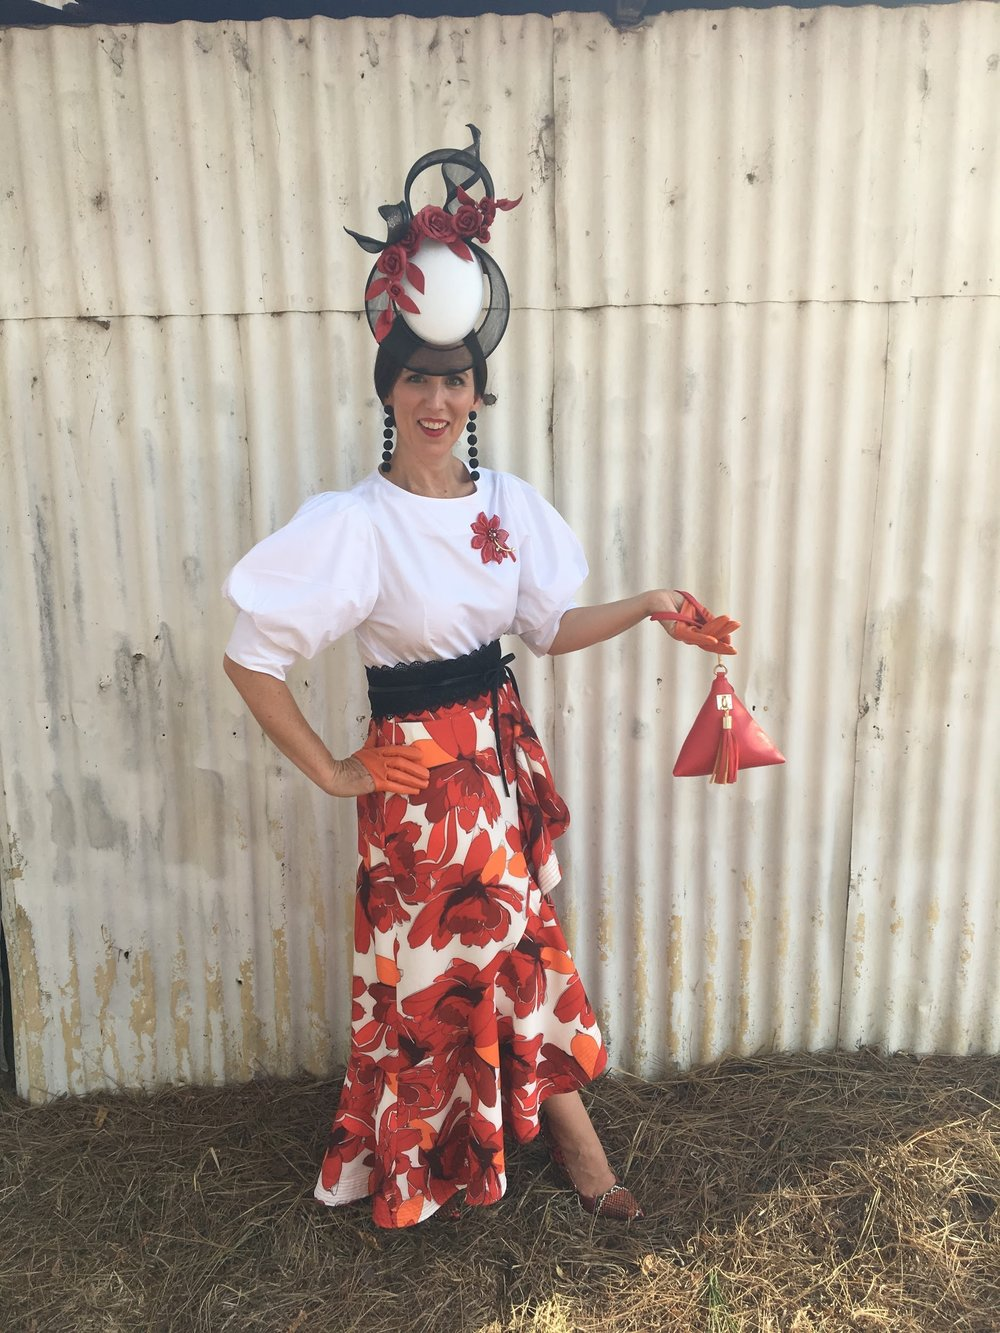 I recently attended a country NSW race meet wearing my Alloport millinery piece as mentioned in the previous blog